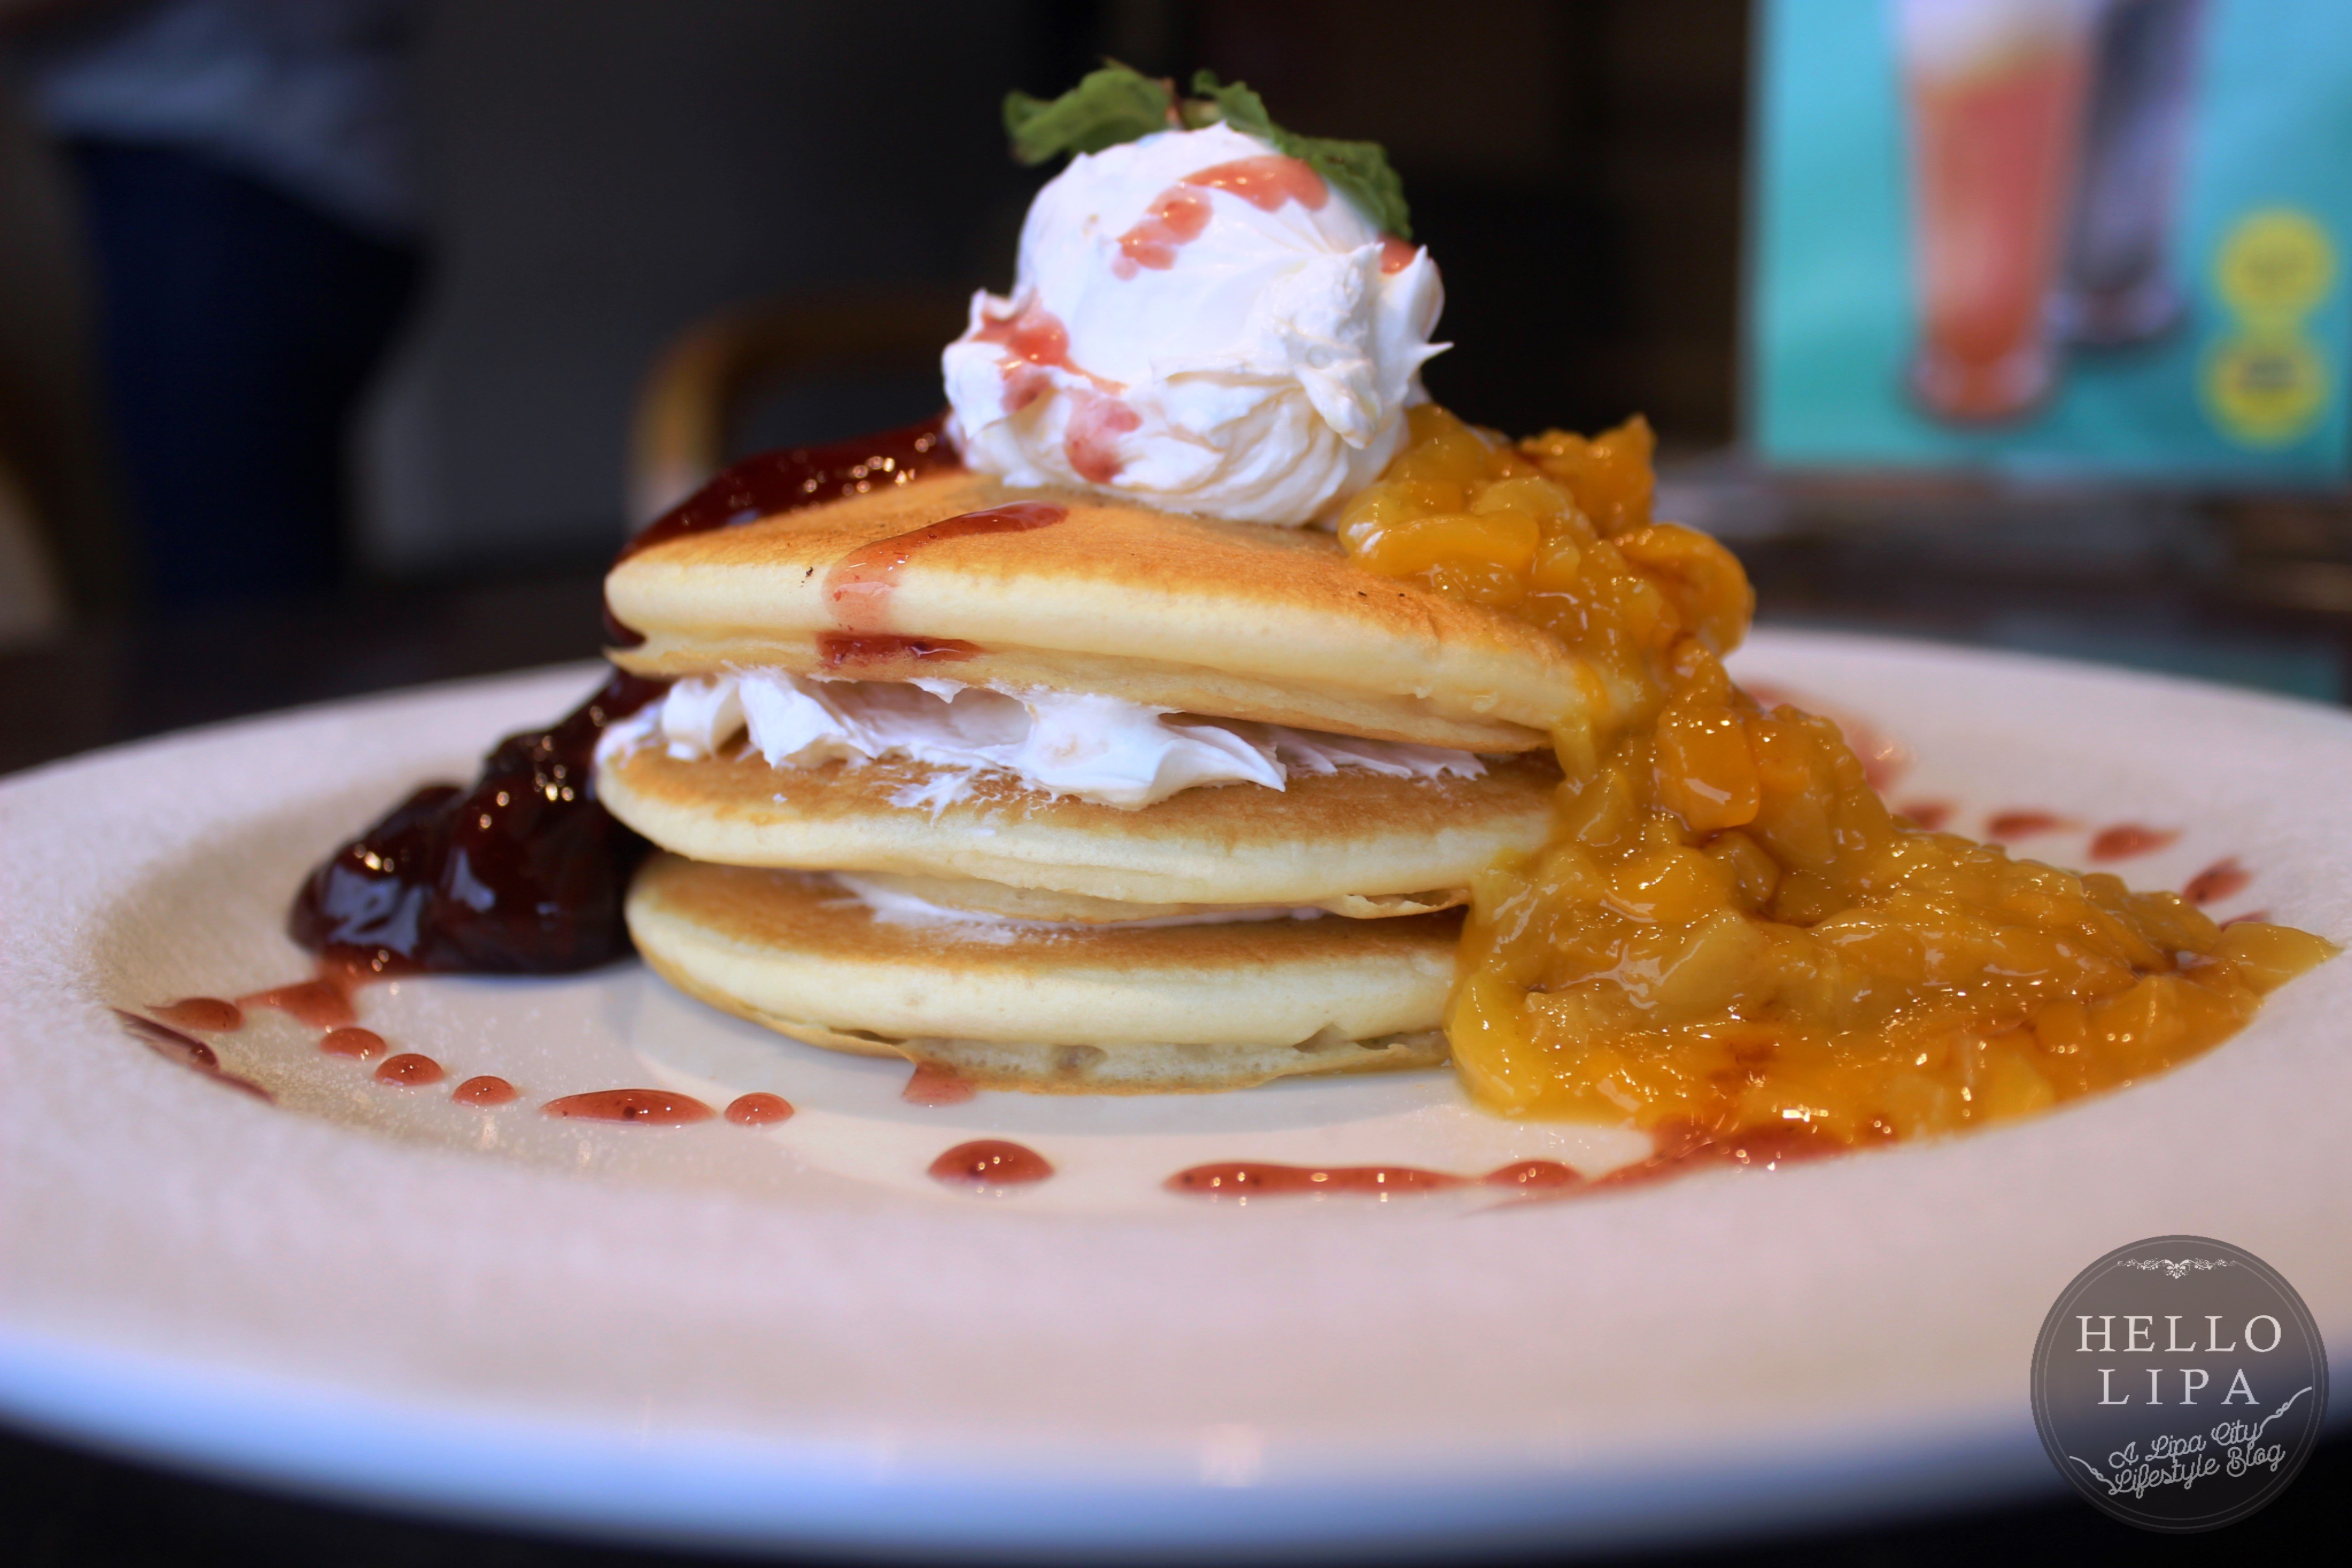 These Old and New Offerings from Pancake House Lipa will be Your New Cravings